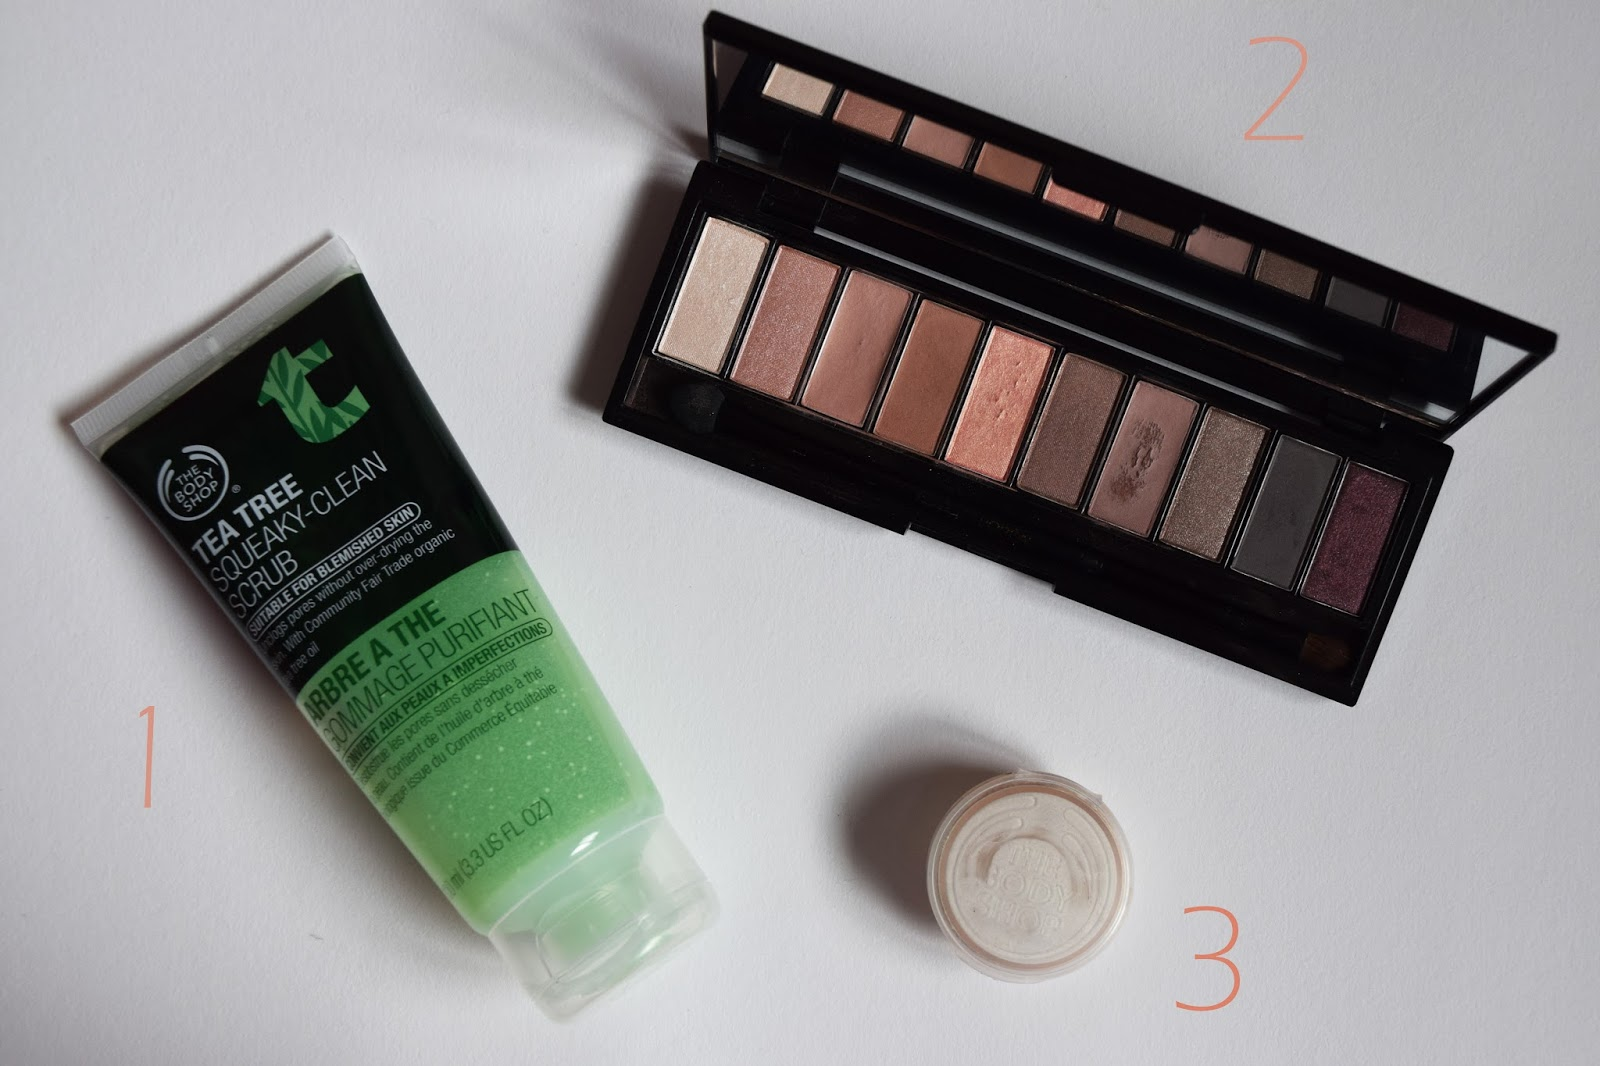 an image showing the L'oreal Nude Rose Palette, the body shop tea tree scrub, and the body shop BB cream